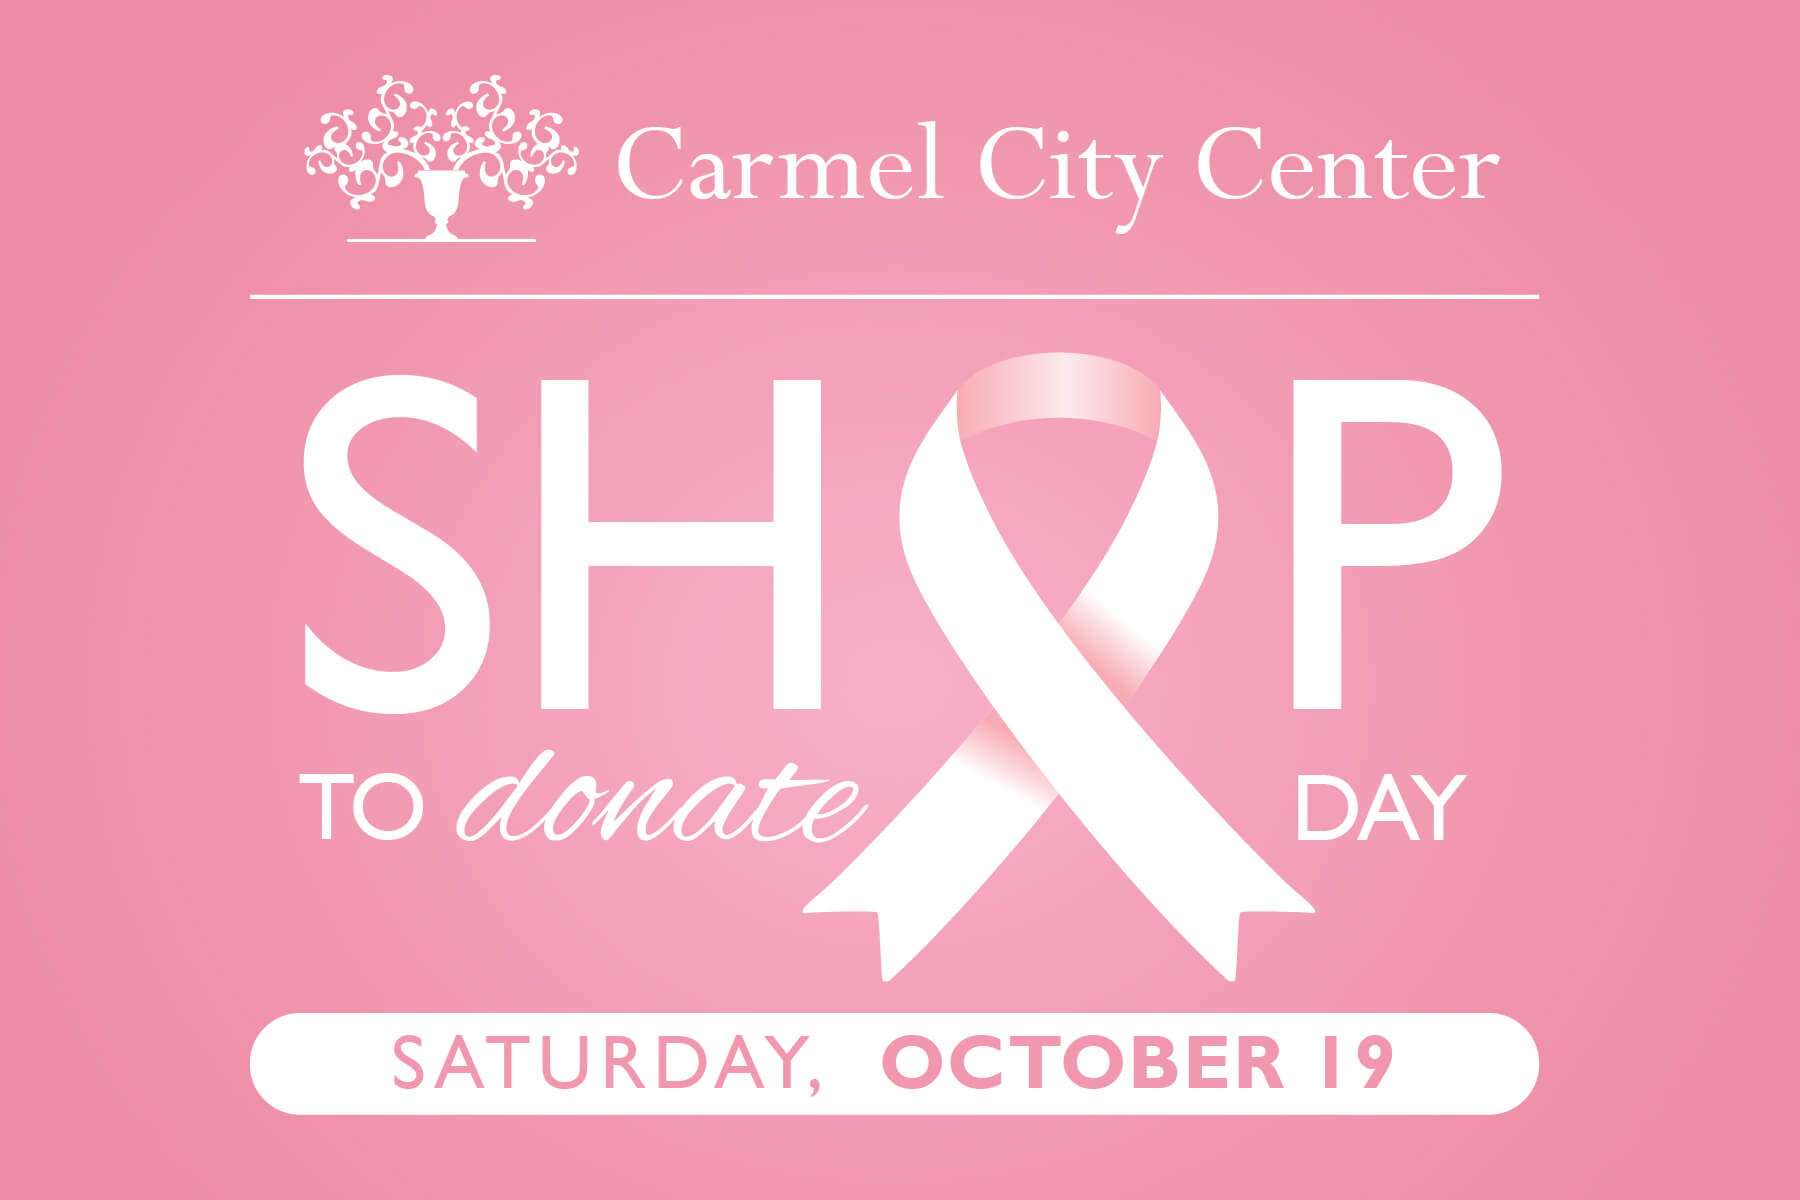 Shop to Donate Day at Carmel City Center